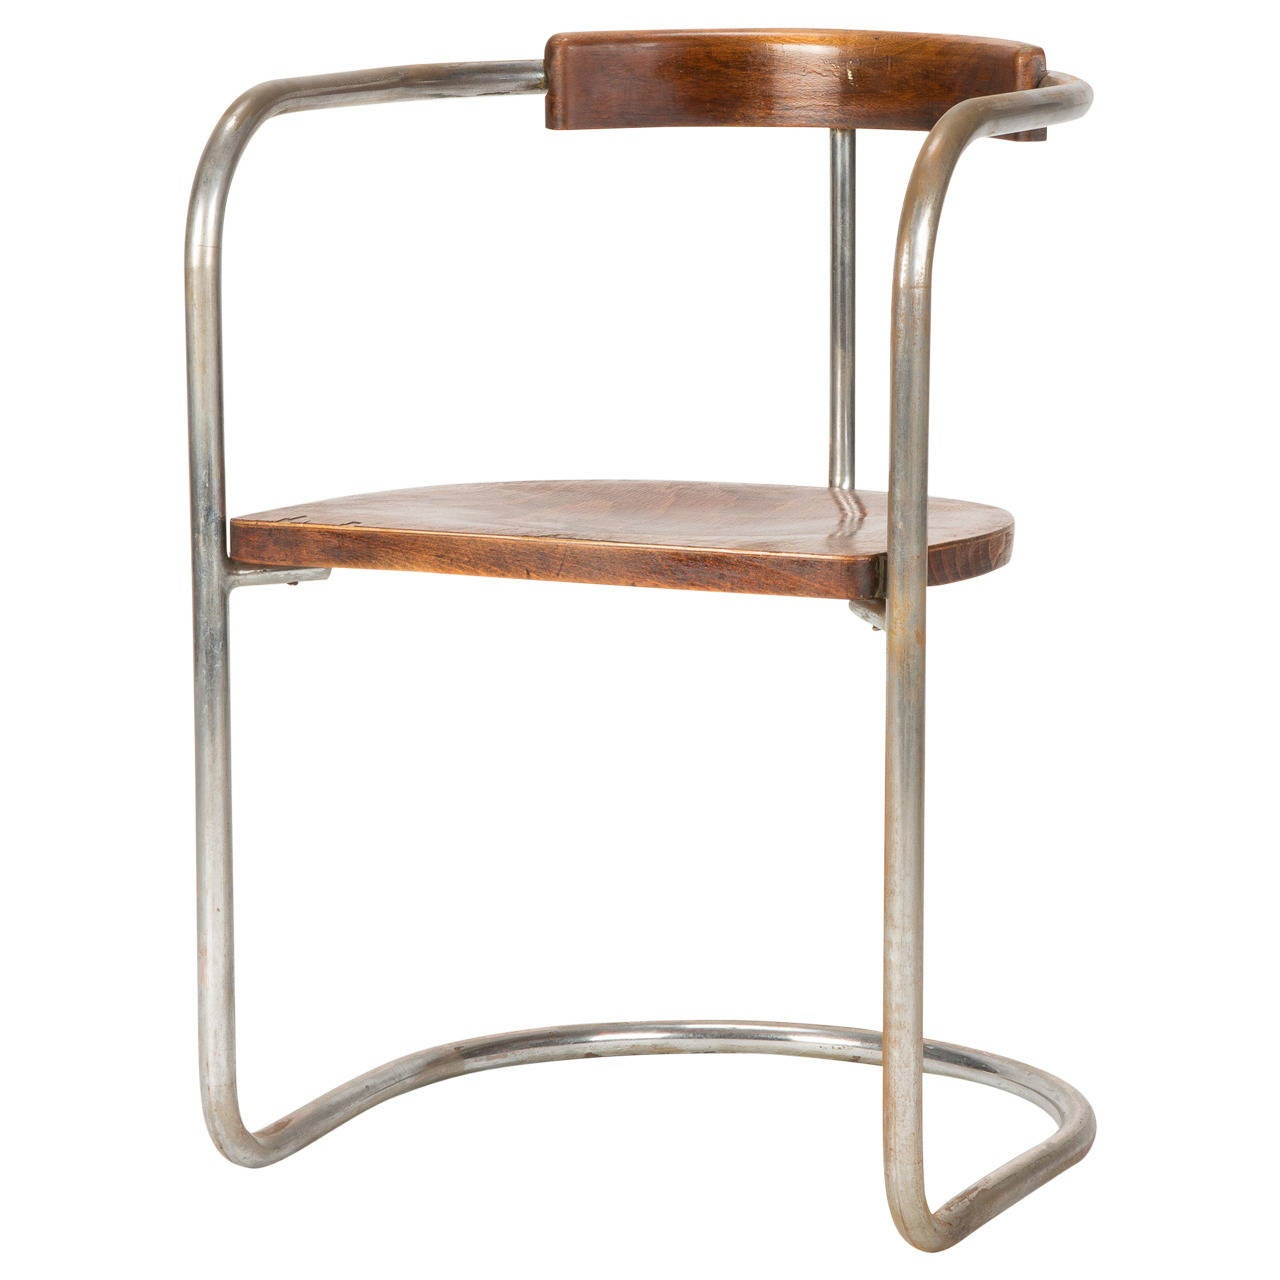 Antique Bauhaus Steel Tube Cantilever Chair Italy 1930s